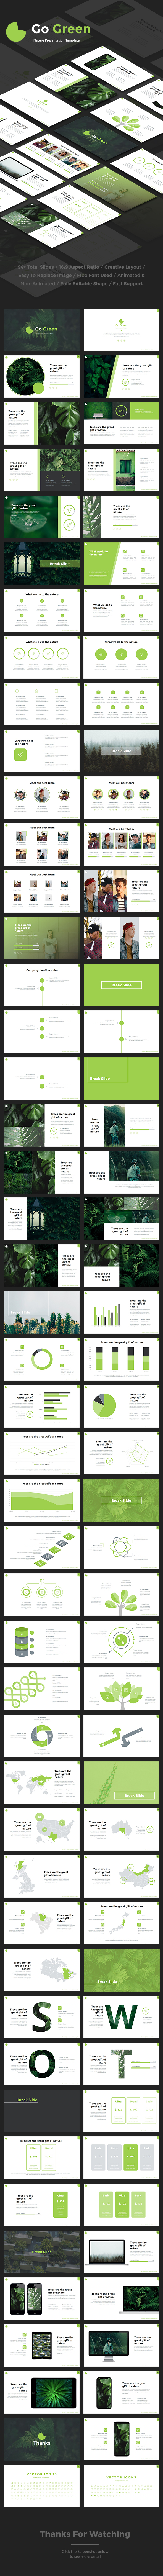 Go Green Keynote - Nature Keynote Templates